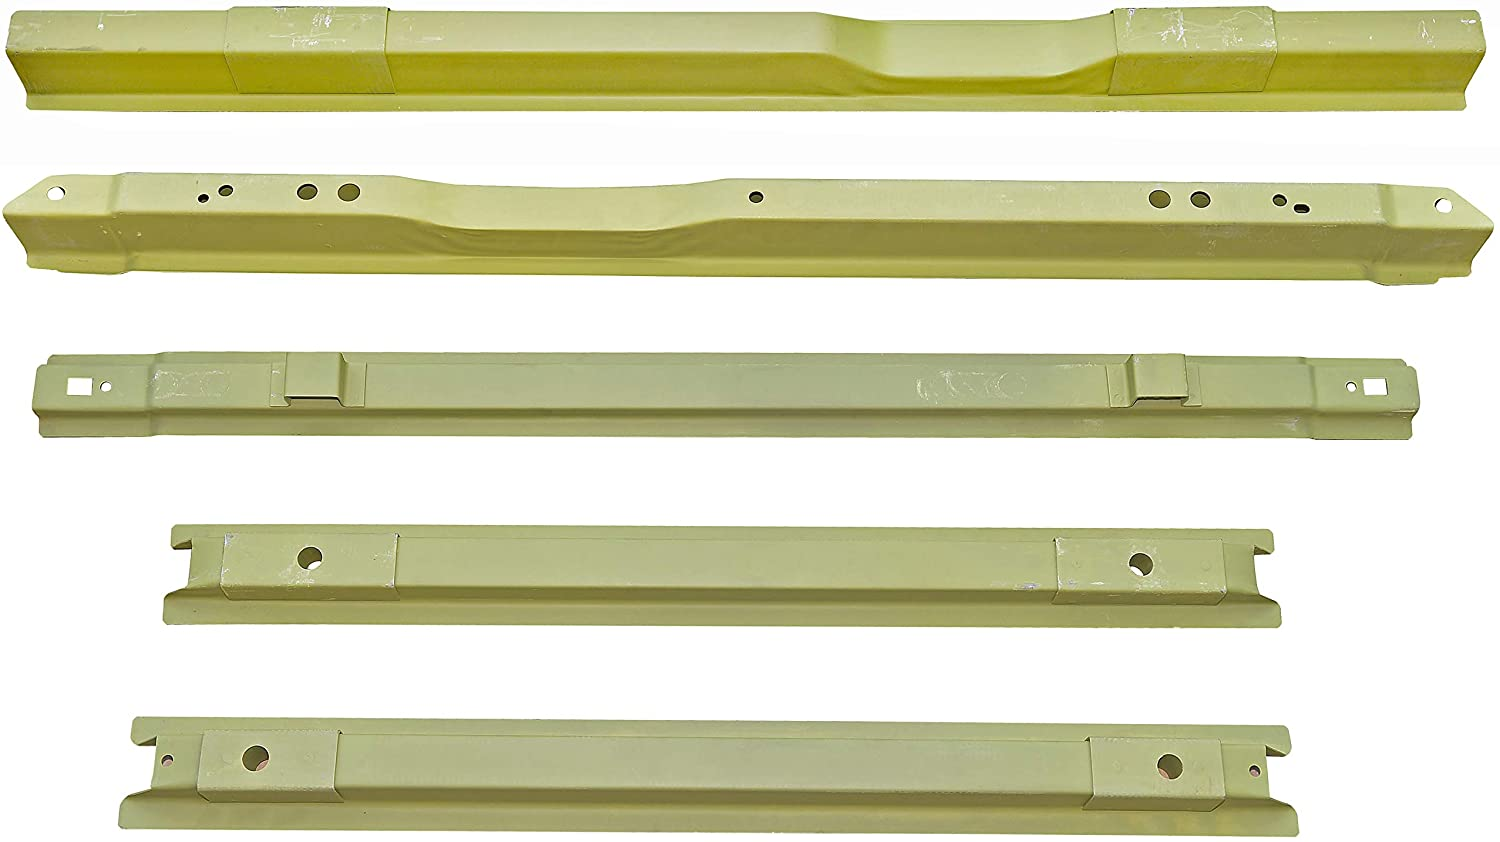 Dorman 924-256 Truck Bed Floor Support